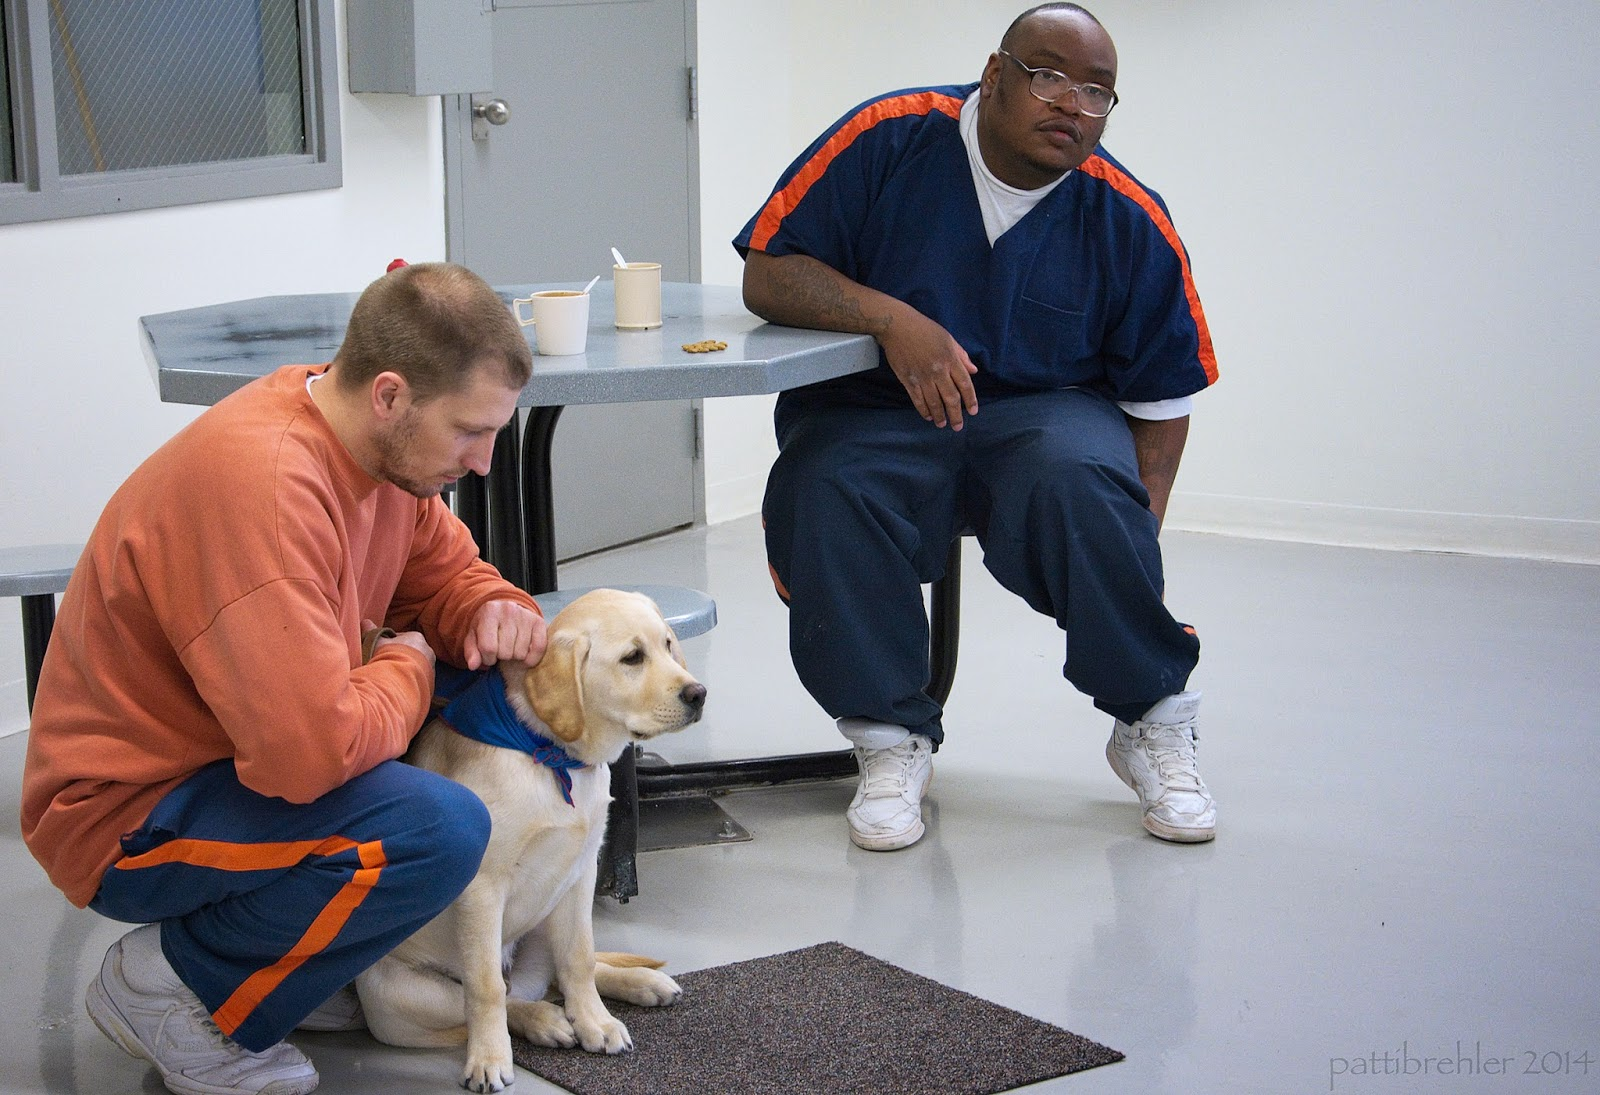 A yellow lab puppy is sitting on a brown carpet mat between the knees of a man who is squatting down behind him. The man is wearing an orange long sleeved t-shirt and blue prison pants with an orange stripe. He is touching the puppy's head with his left hand and his right arm is resting across his right knee. He is looking at the puppy. A second man is sitting on a stool attached to an octogon shaped table. He is also wearing the prison blue uniform. He is african american and is wearing glasses. HIs right forearm is resting on the table and he is reaching behind his left leg with his left hand.